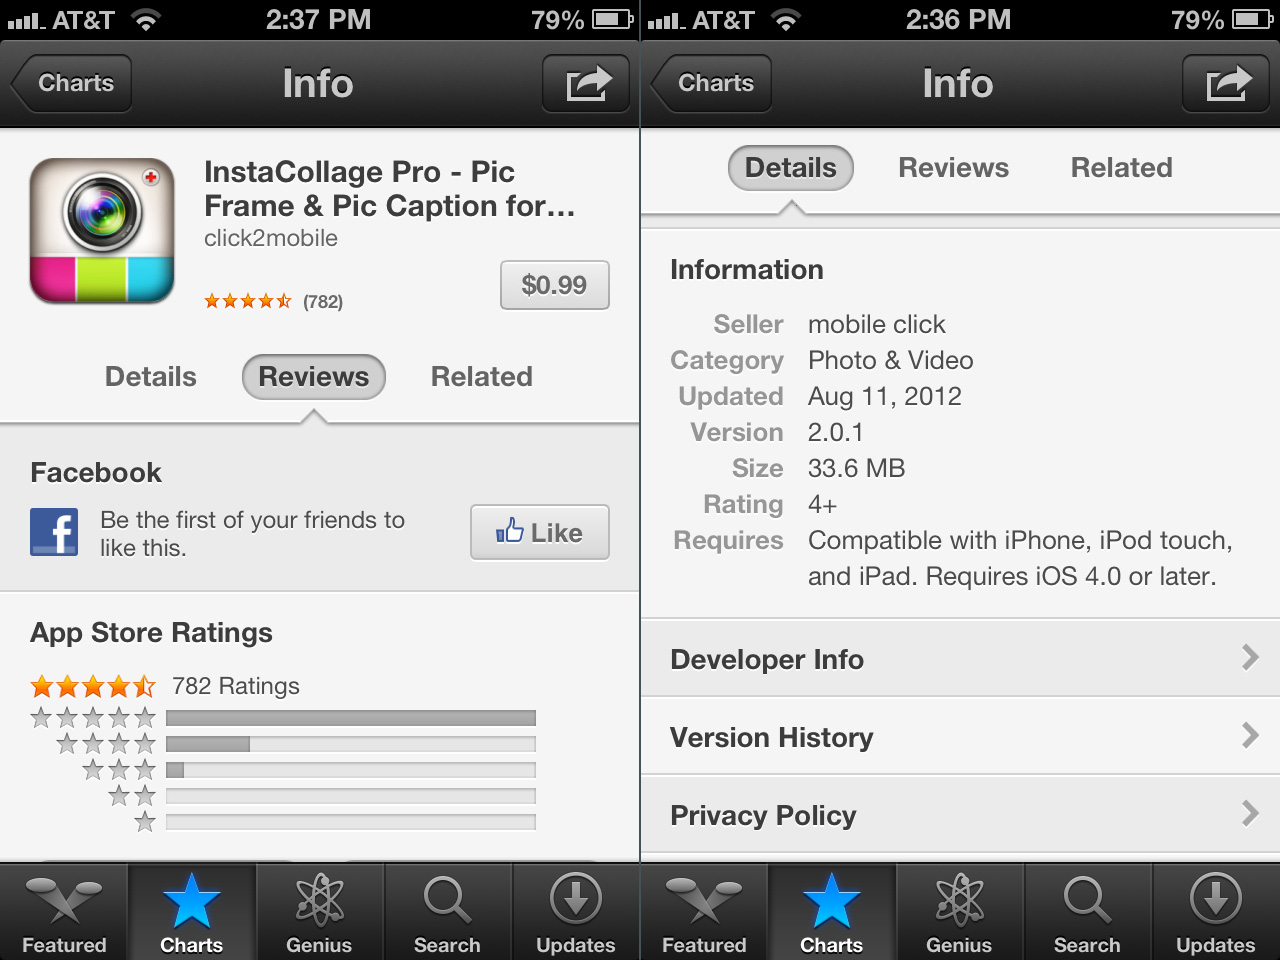 Reviews (left) and related apps (right) are in separate sub-tabs.